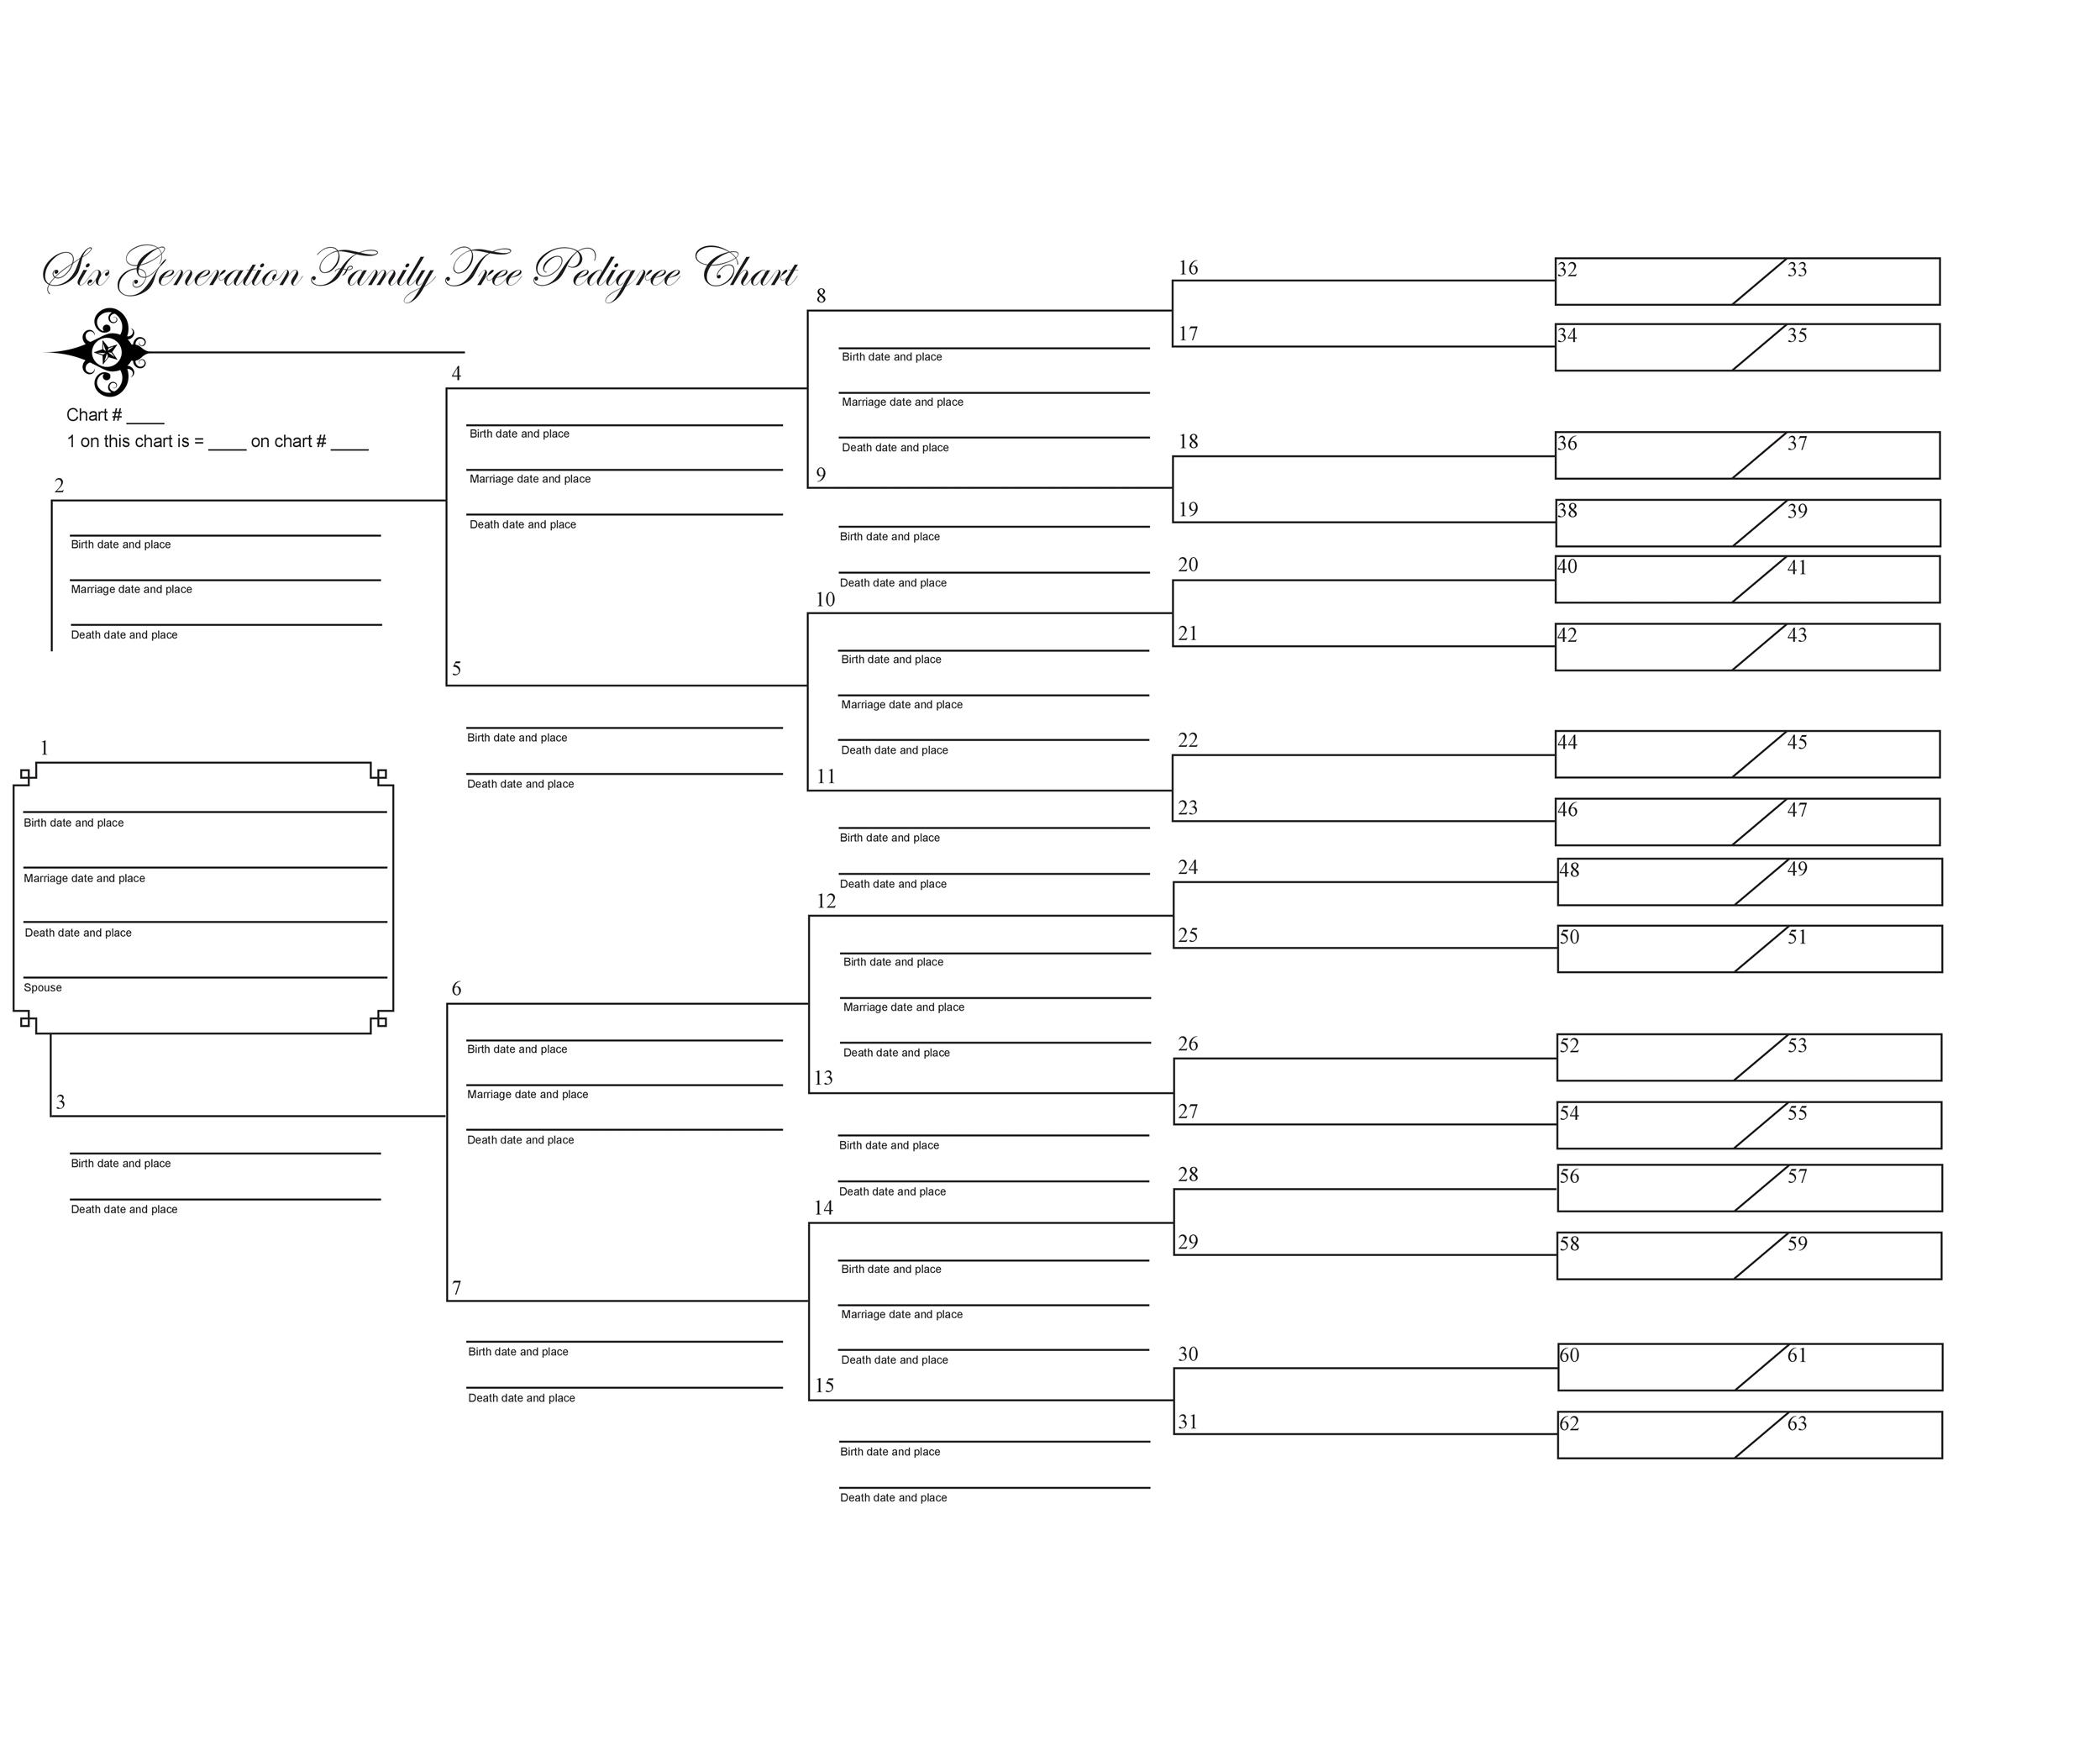 50+ Free Family Tree Templates (Word, Excel, PDF) - Template Lab